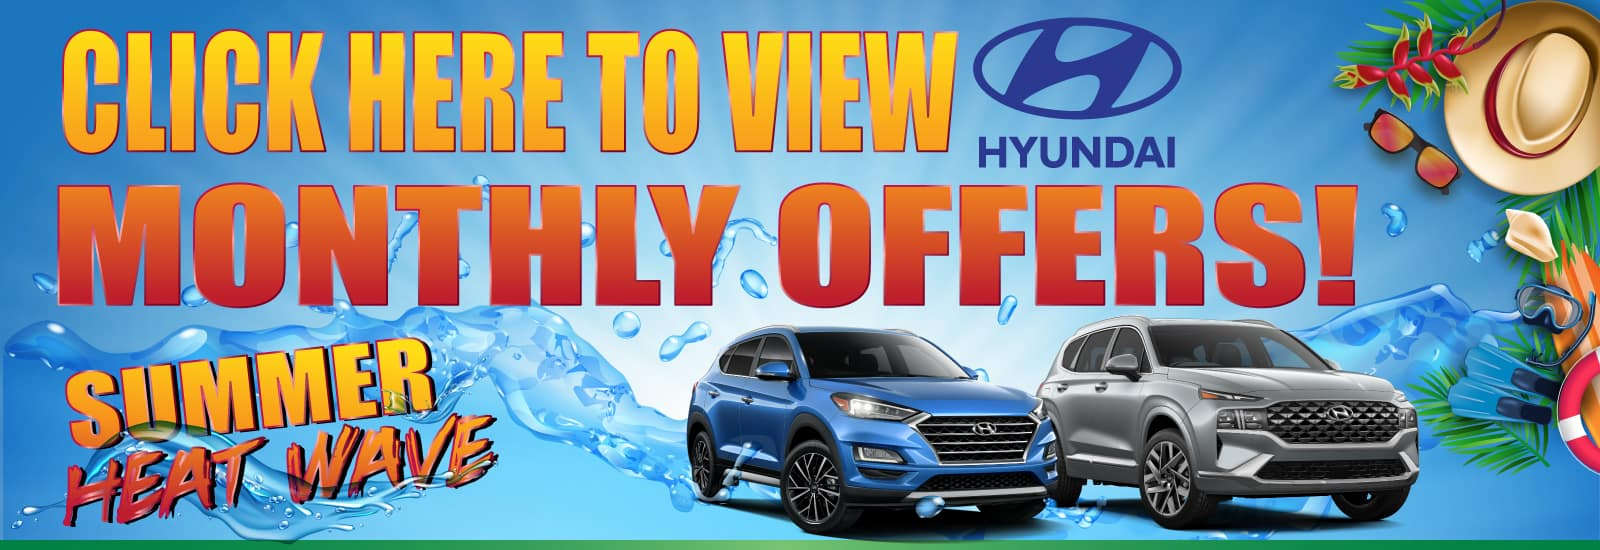 Click-Here-To-View-Hyundai-Monthly-Offers-Web-Banner-1600×500 (002) July